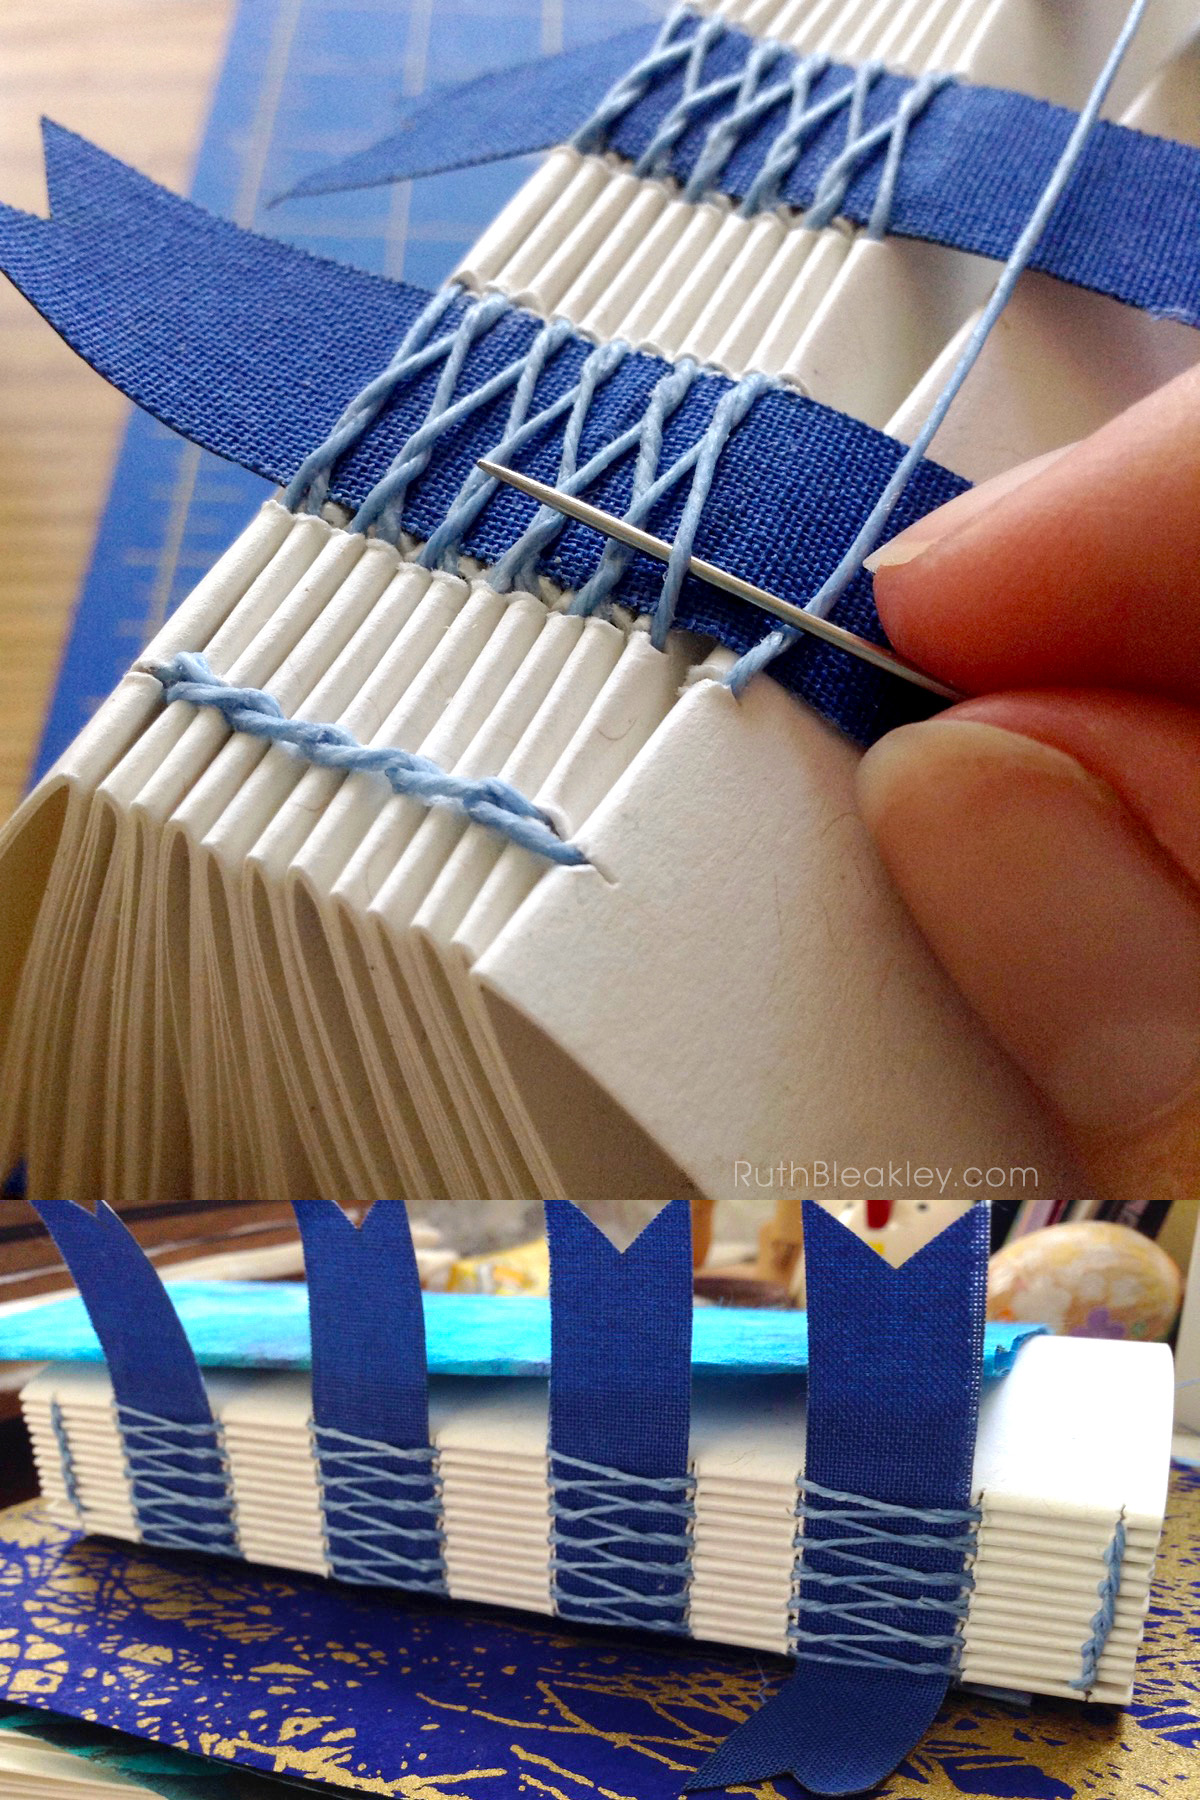 Blue French Link Stitch Journal Handmade by Ruth Bleakley